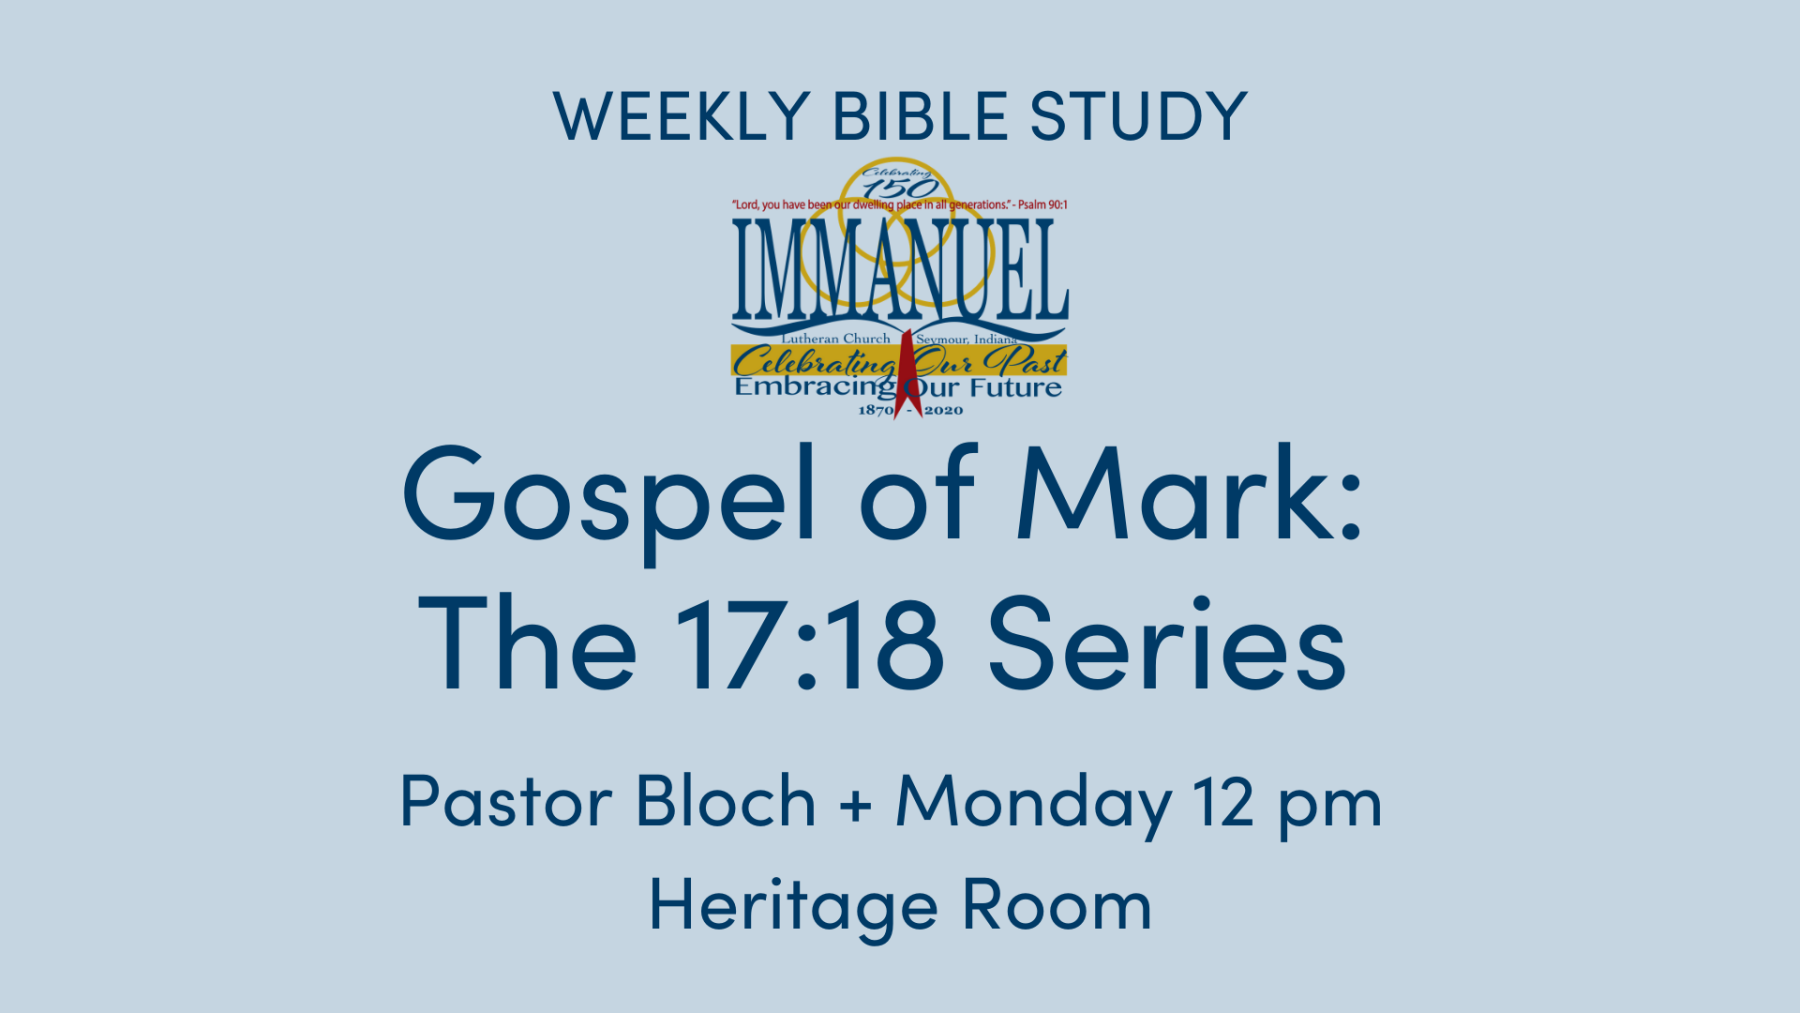 Gospel of Mark: The 17:18 Series